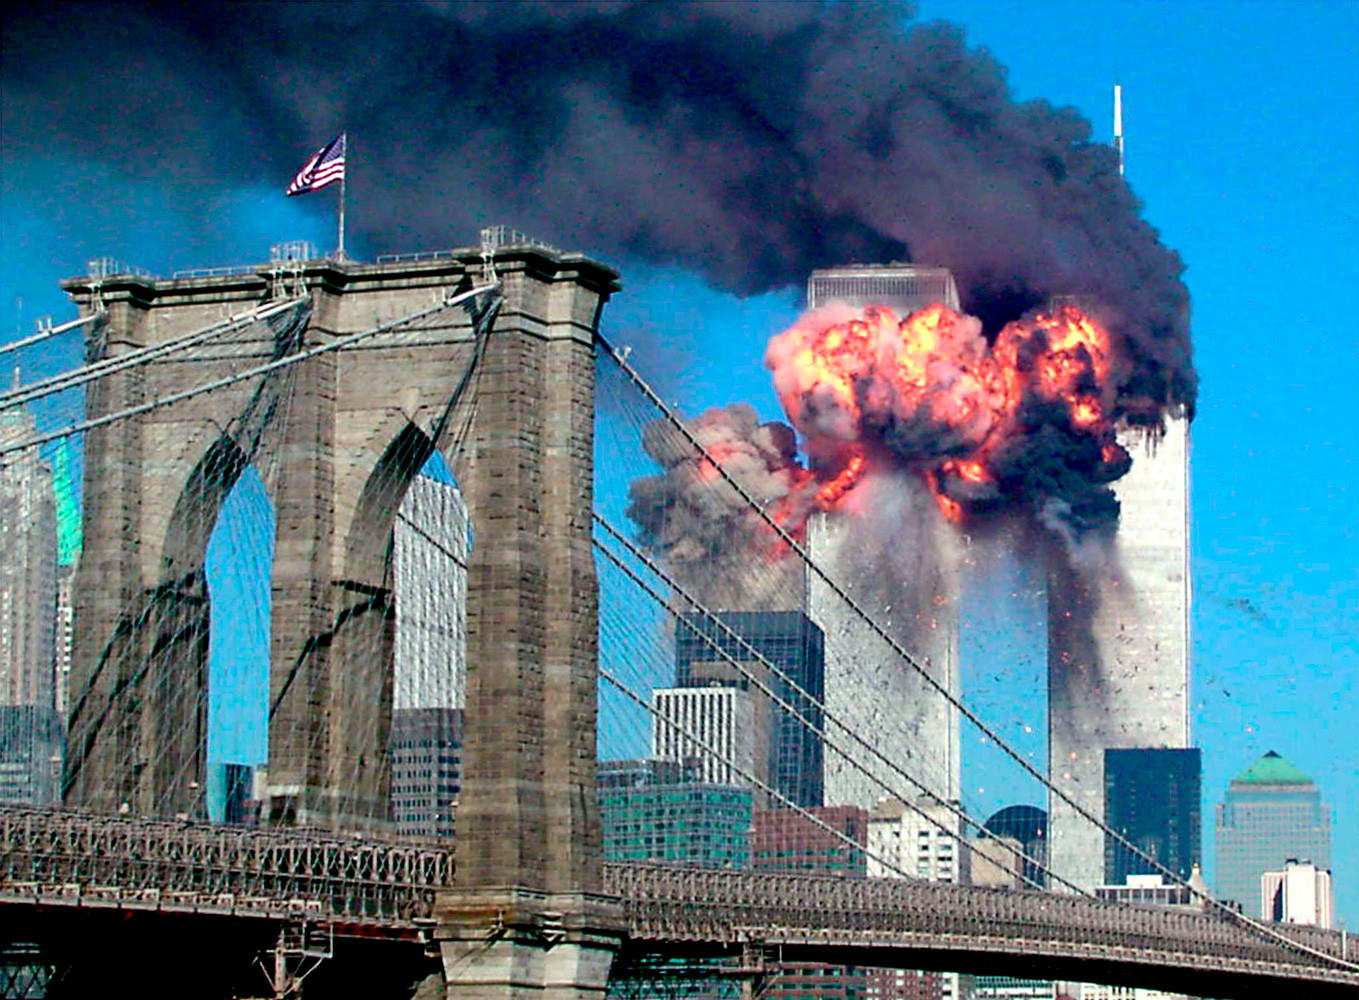 september eleventh 2001 attack on america September 11 2001 tribute and a watch of what happend that horrible morning near world trade center buildings victims and relatives must have peace and justice.